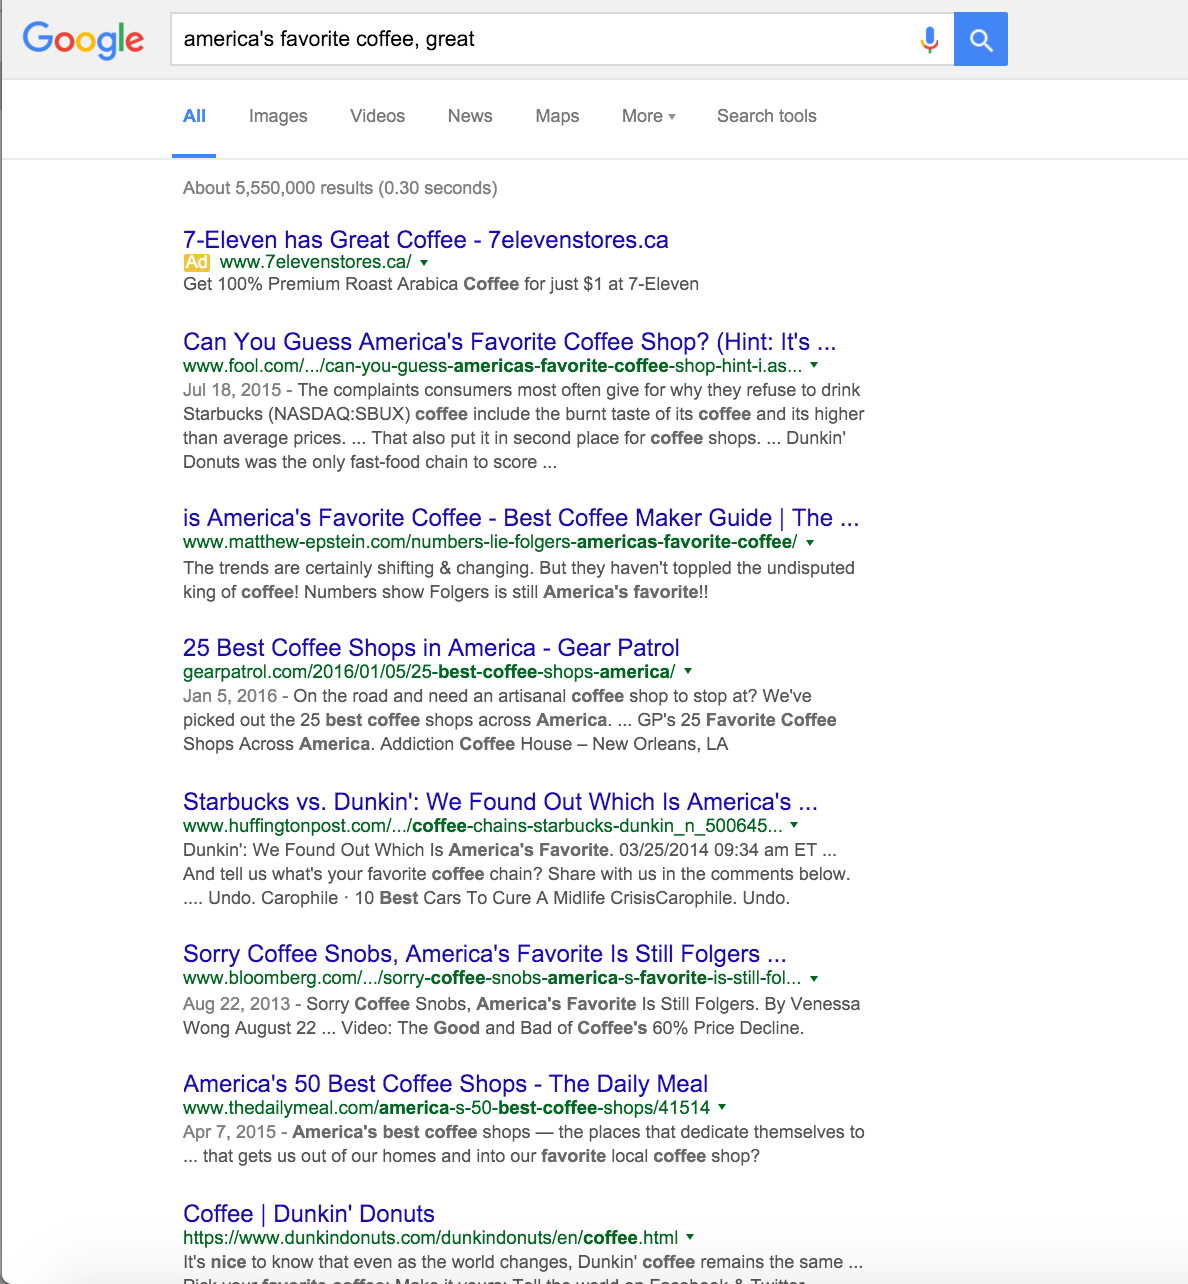 a digital marketing analysis of coffee shop brands dunkin donuts dunkin donut s ranks 8th on the first page